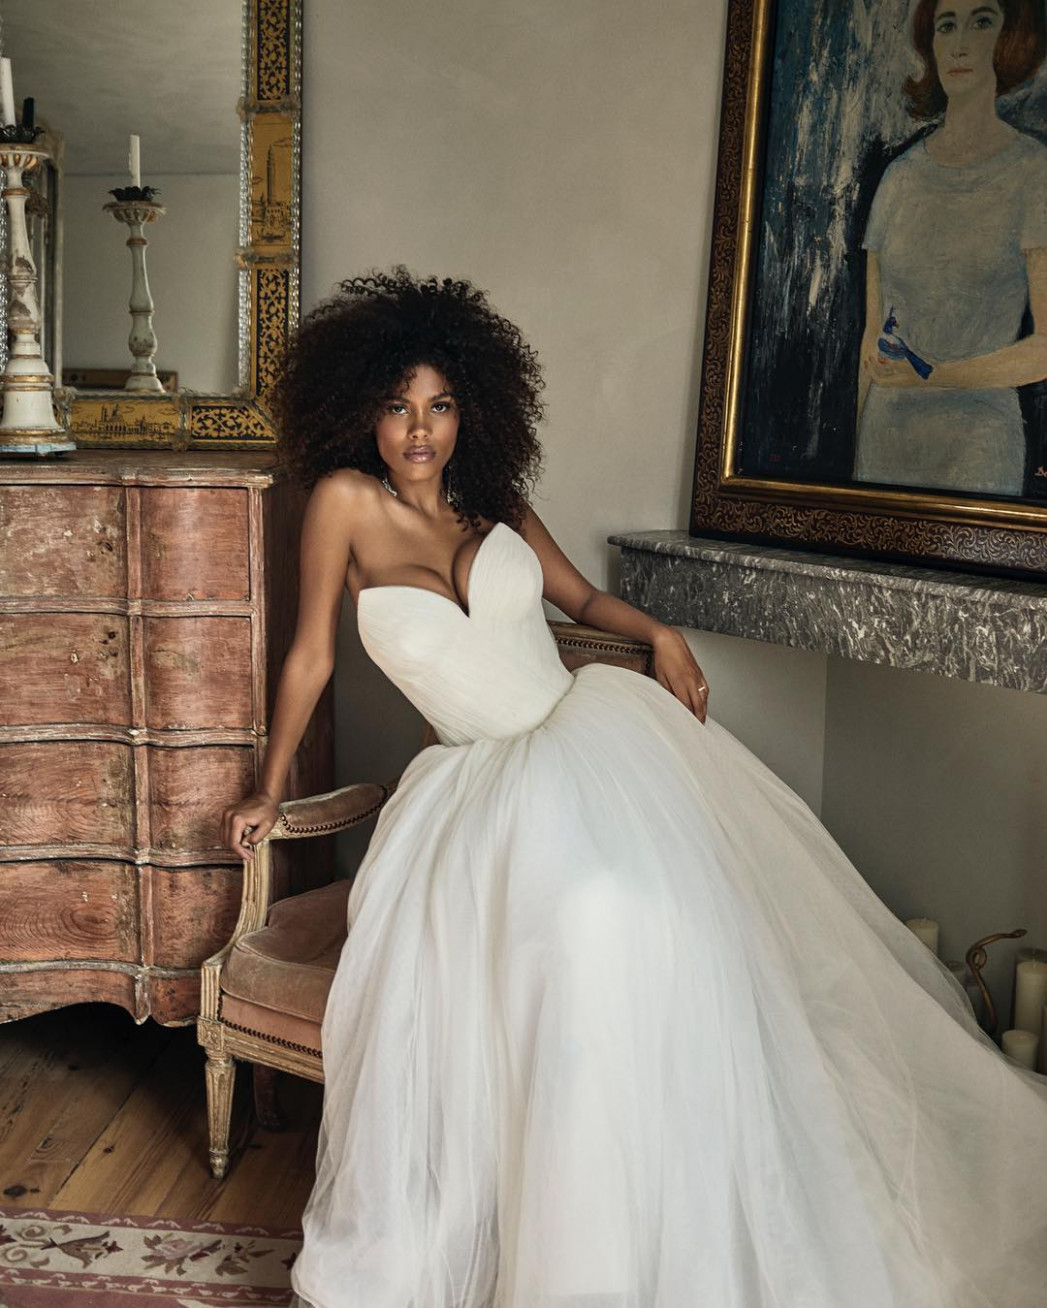 vera wang's 9 greatest wedding dresses vogue paris vera wang hochzeitskleid | Vera Wang Hochzeitskleid